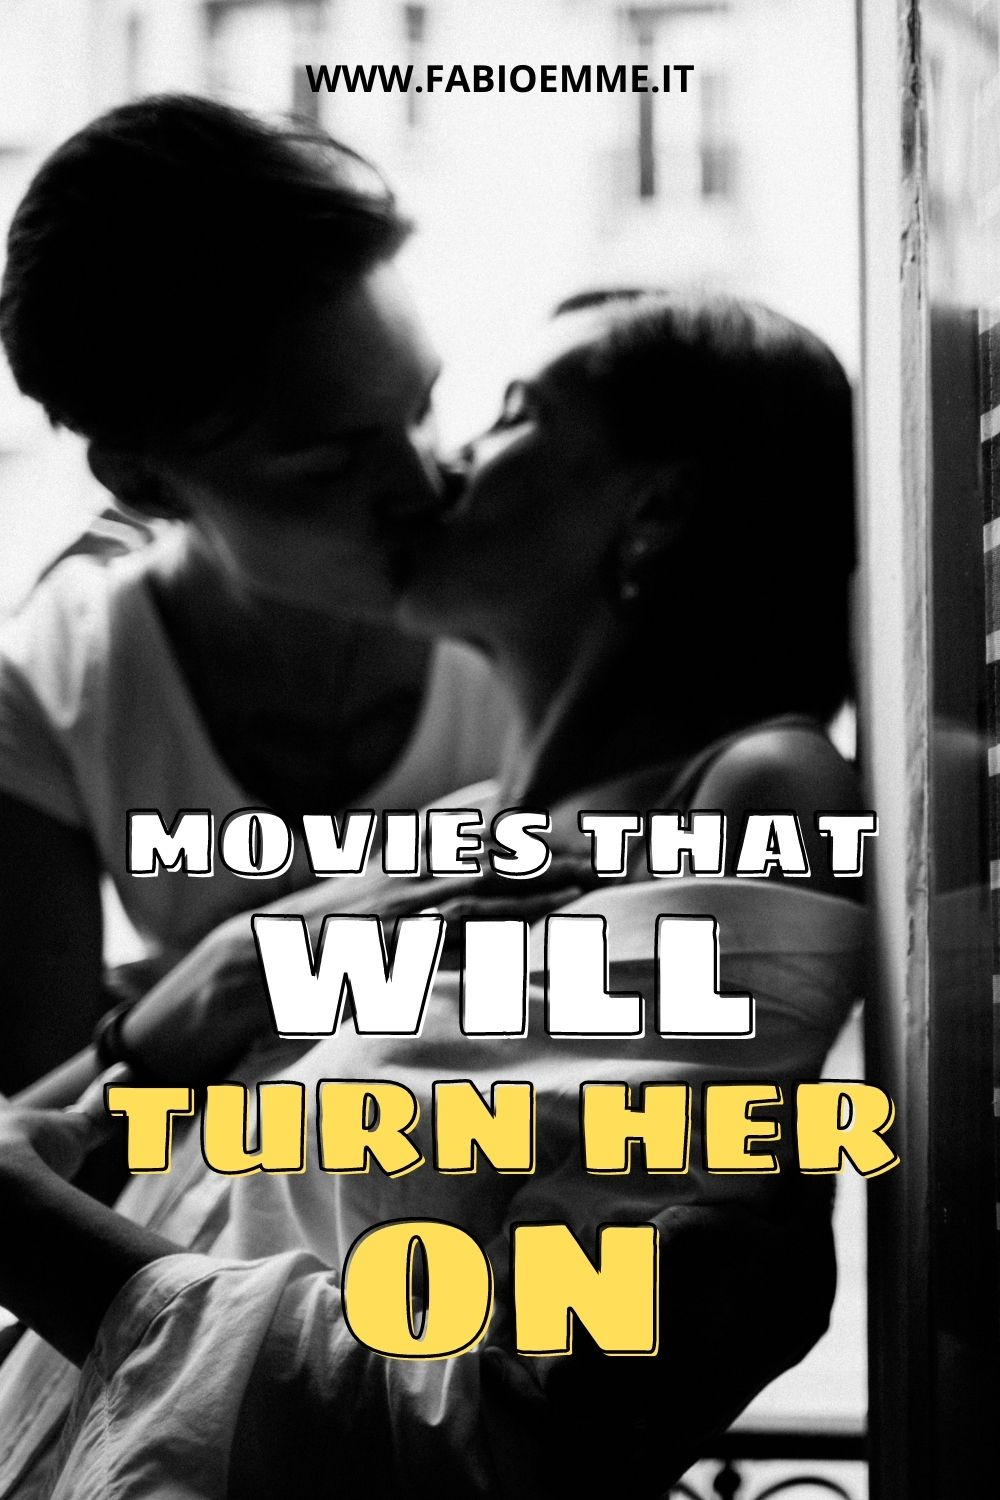 When a couple of secret lovers waits so long for an intimate night, nothing is better than creating the right mood to turn her on. #MOVIES